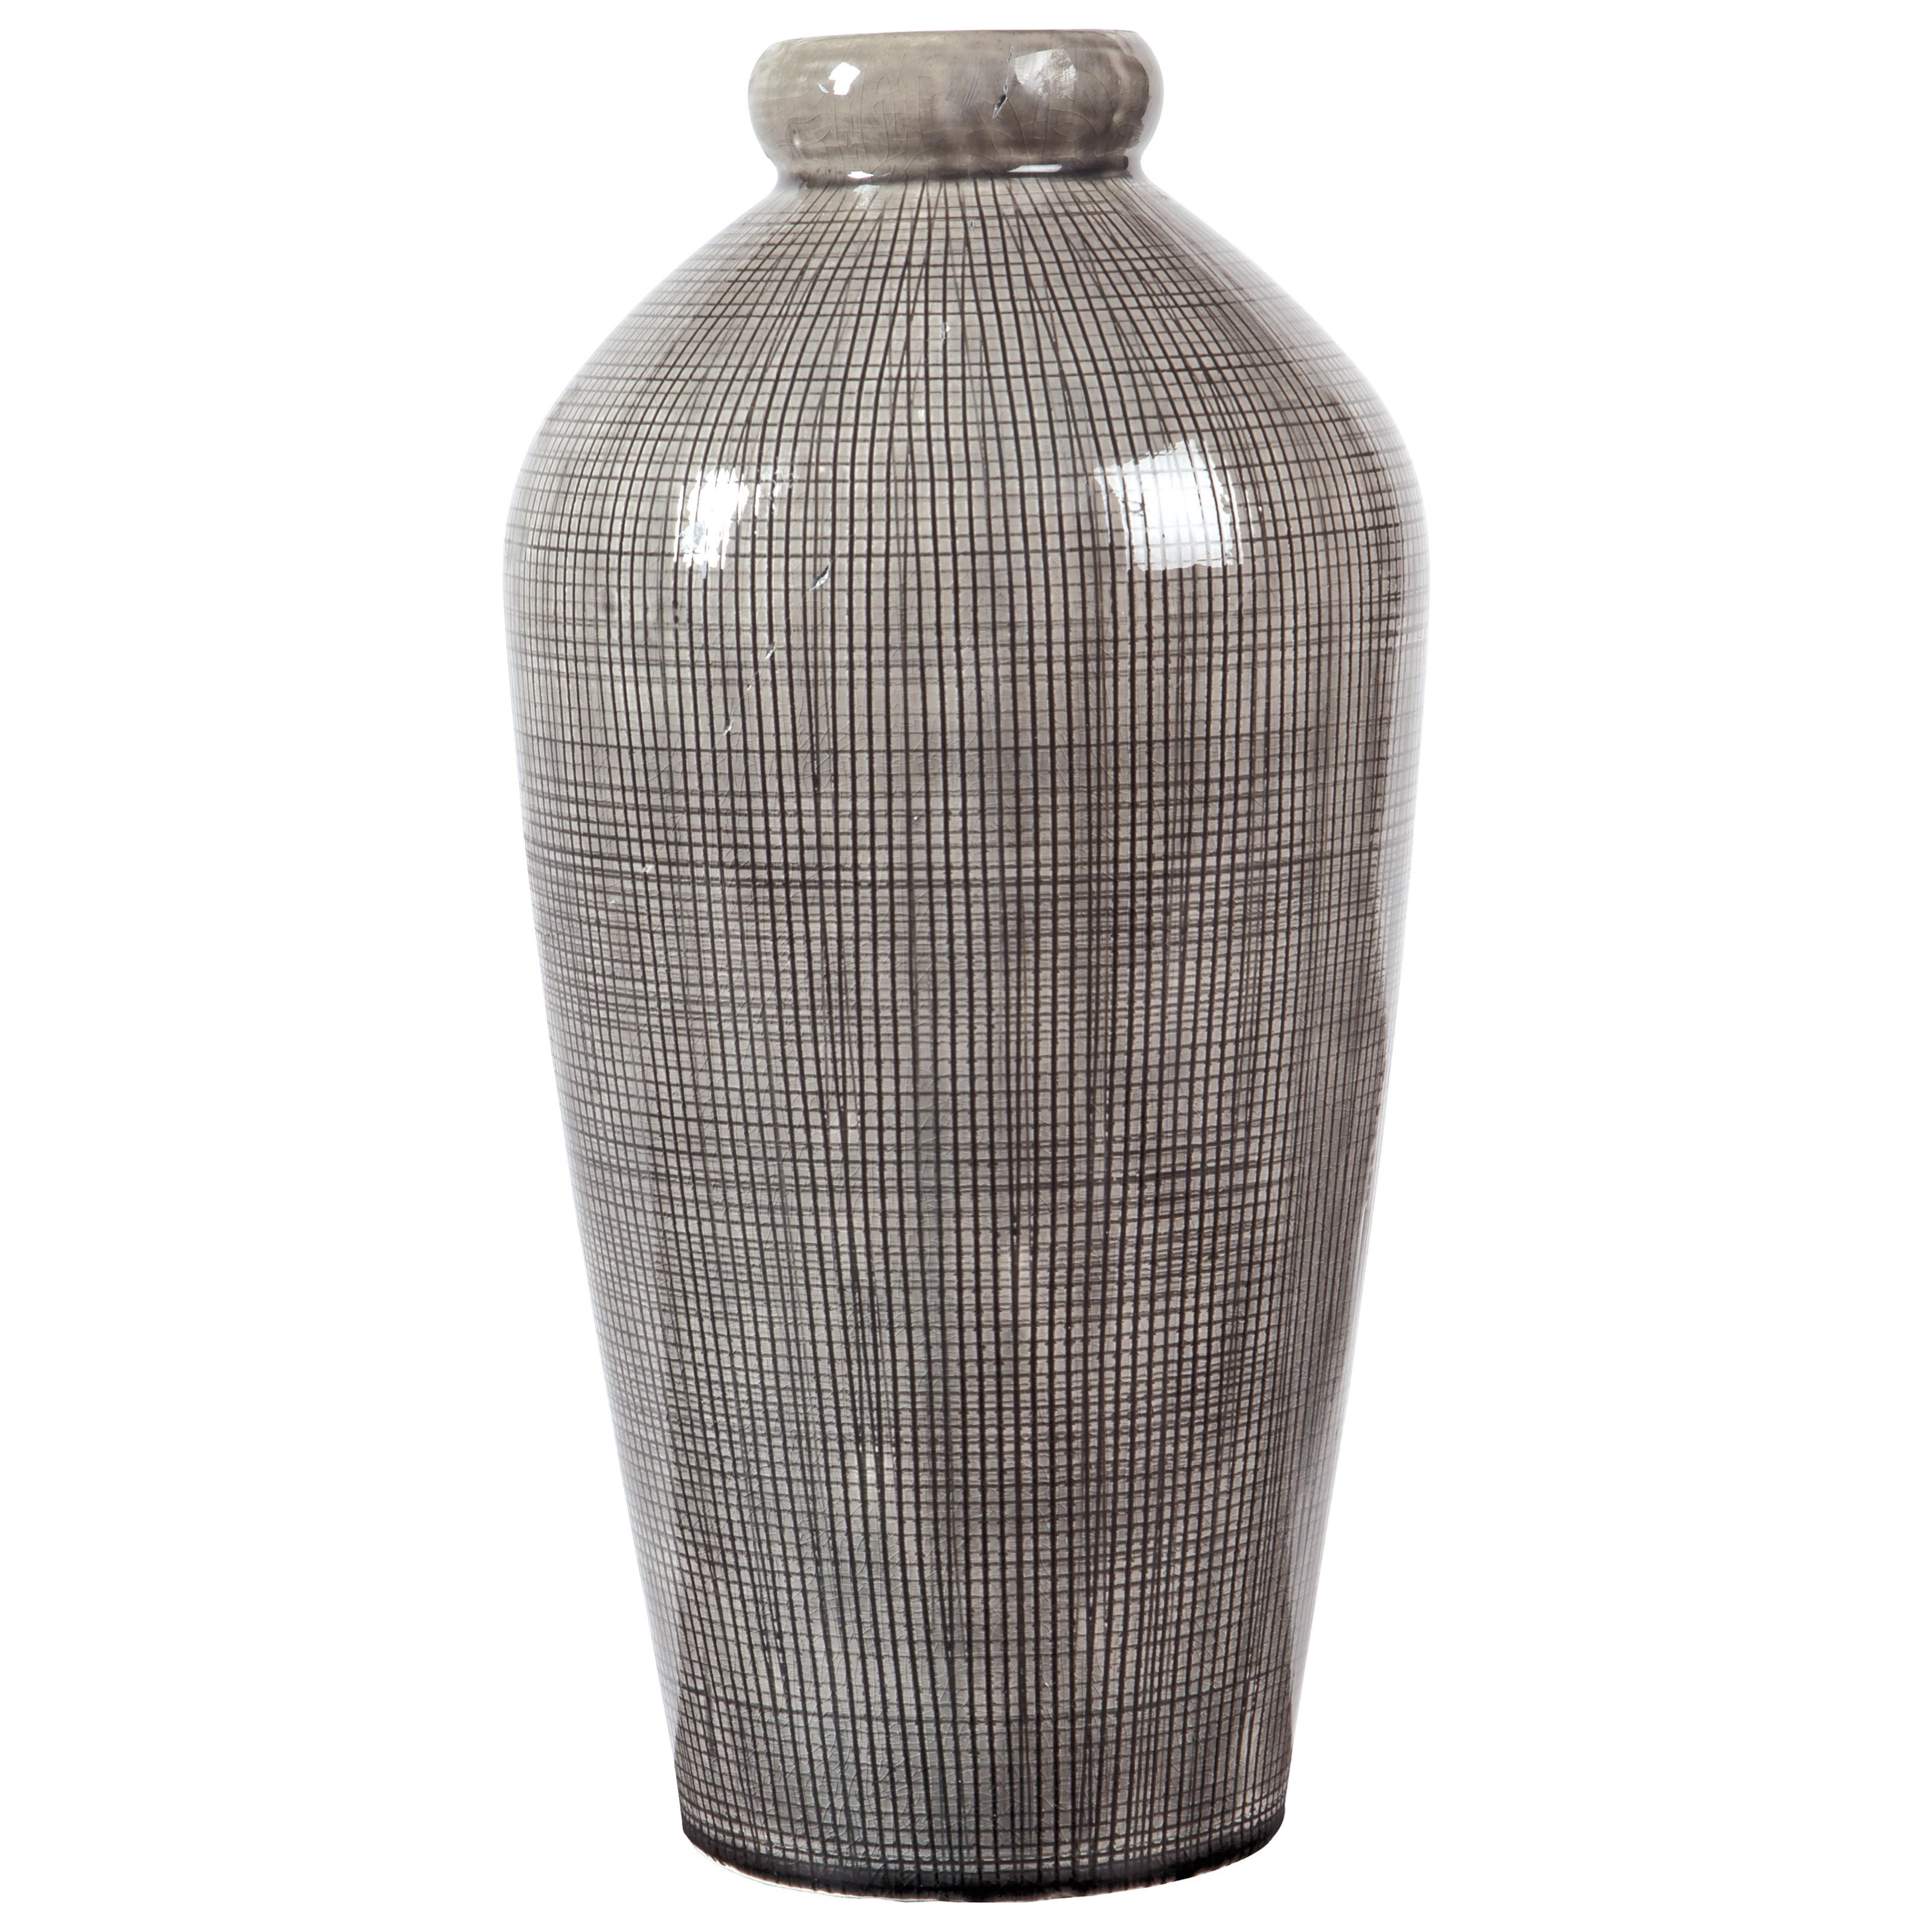 Accents Dilanne Gray Vase by Signature Design at Fisher Home Furnishings